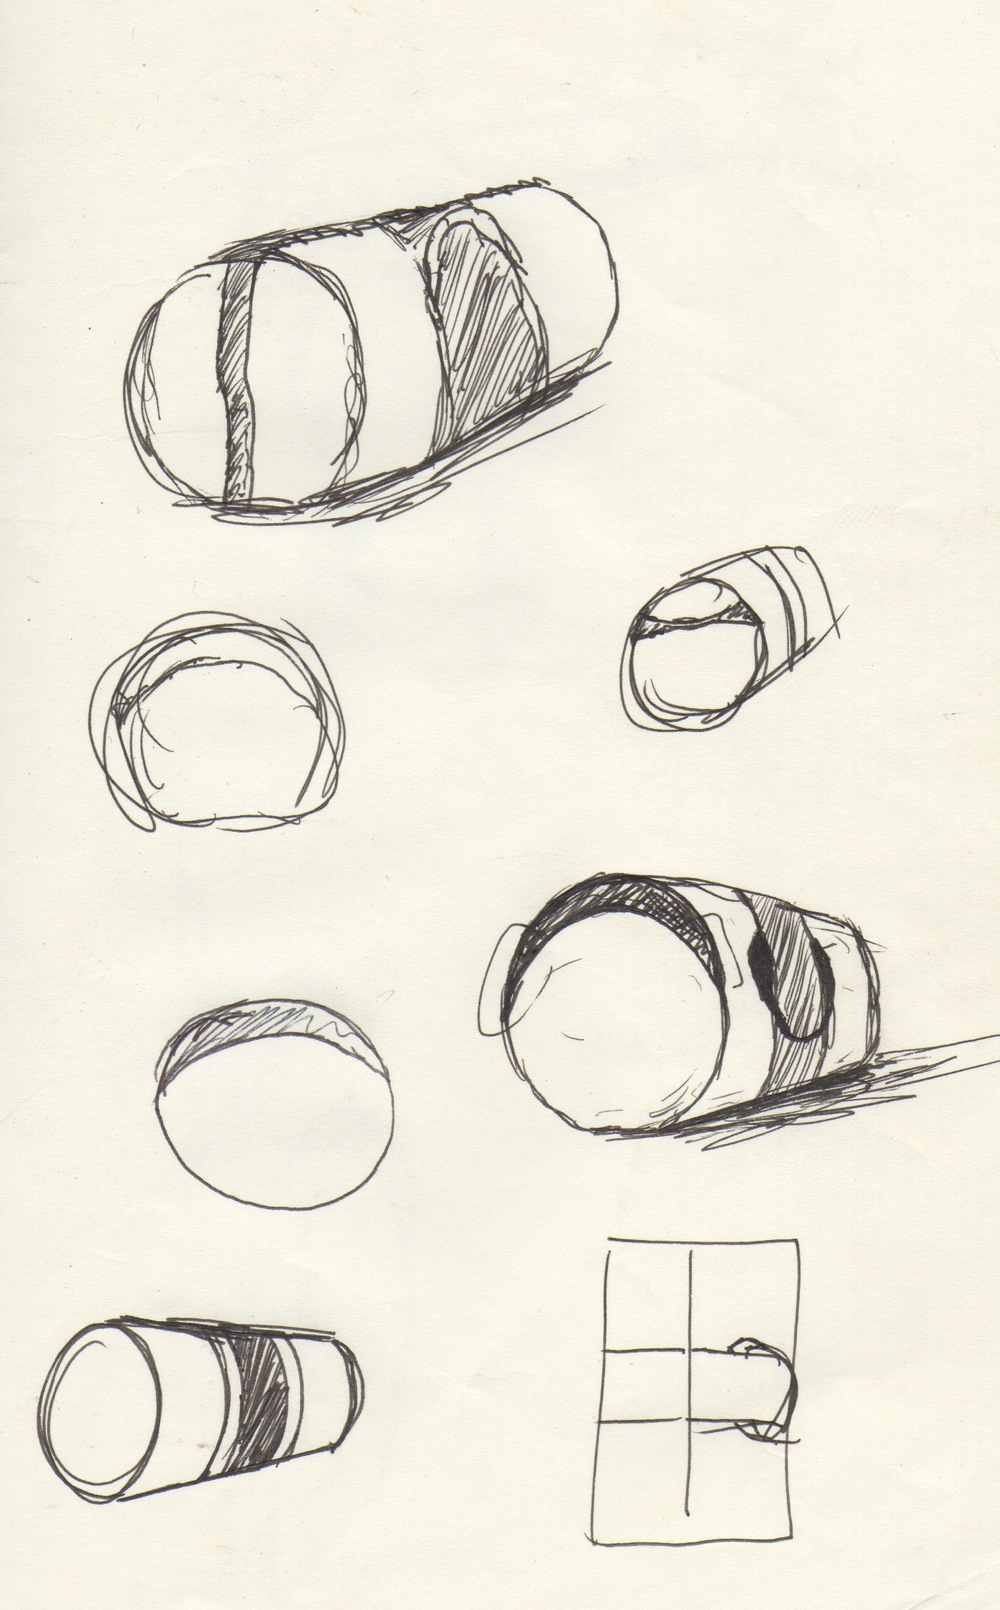 cylindrical bag sketch.jpeg